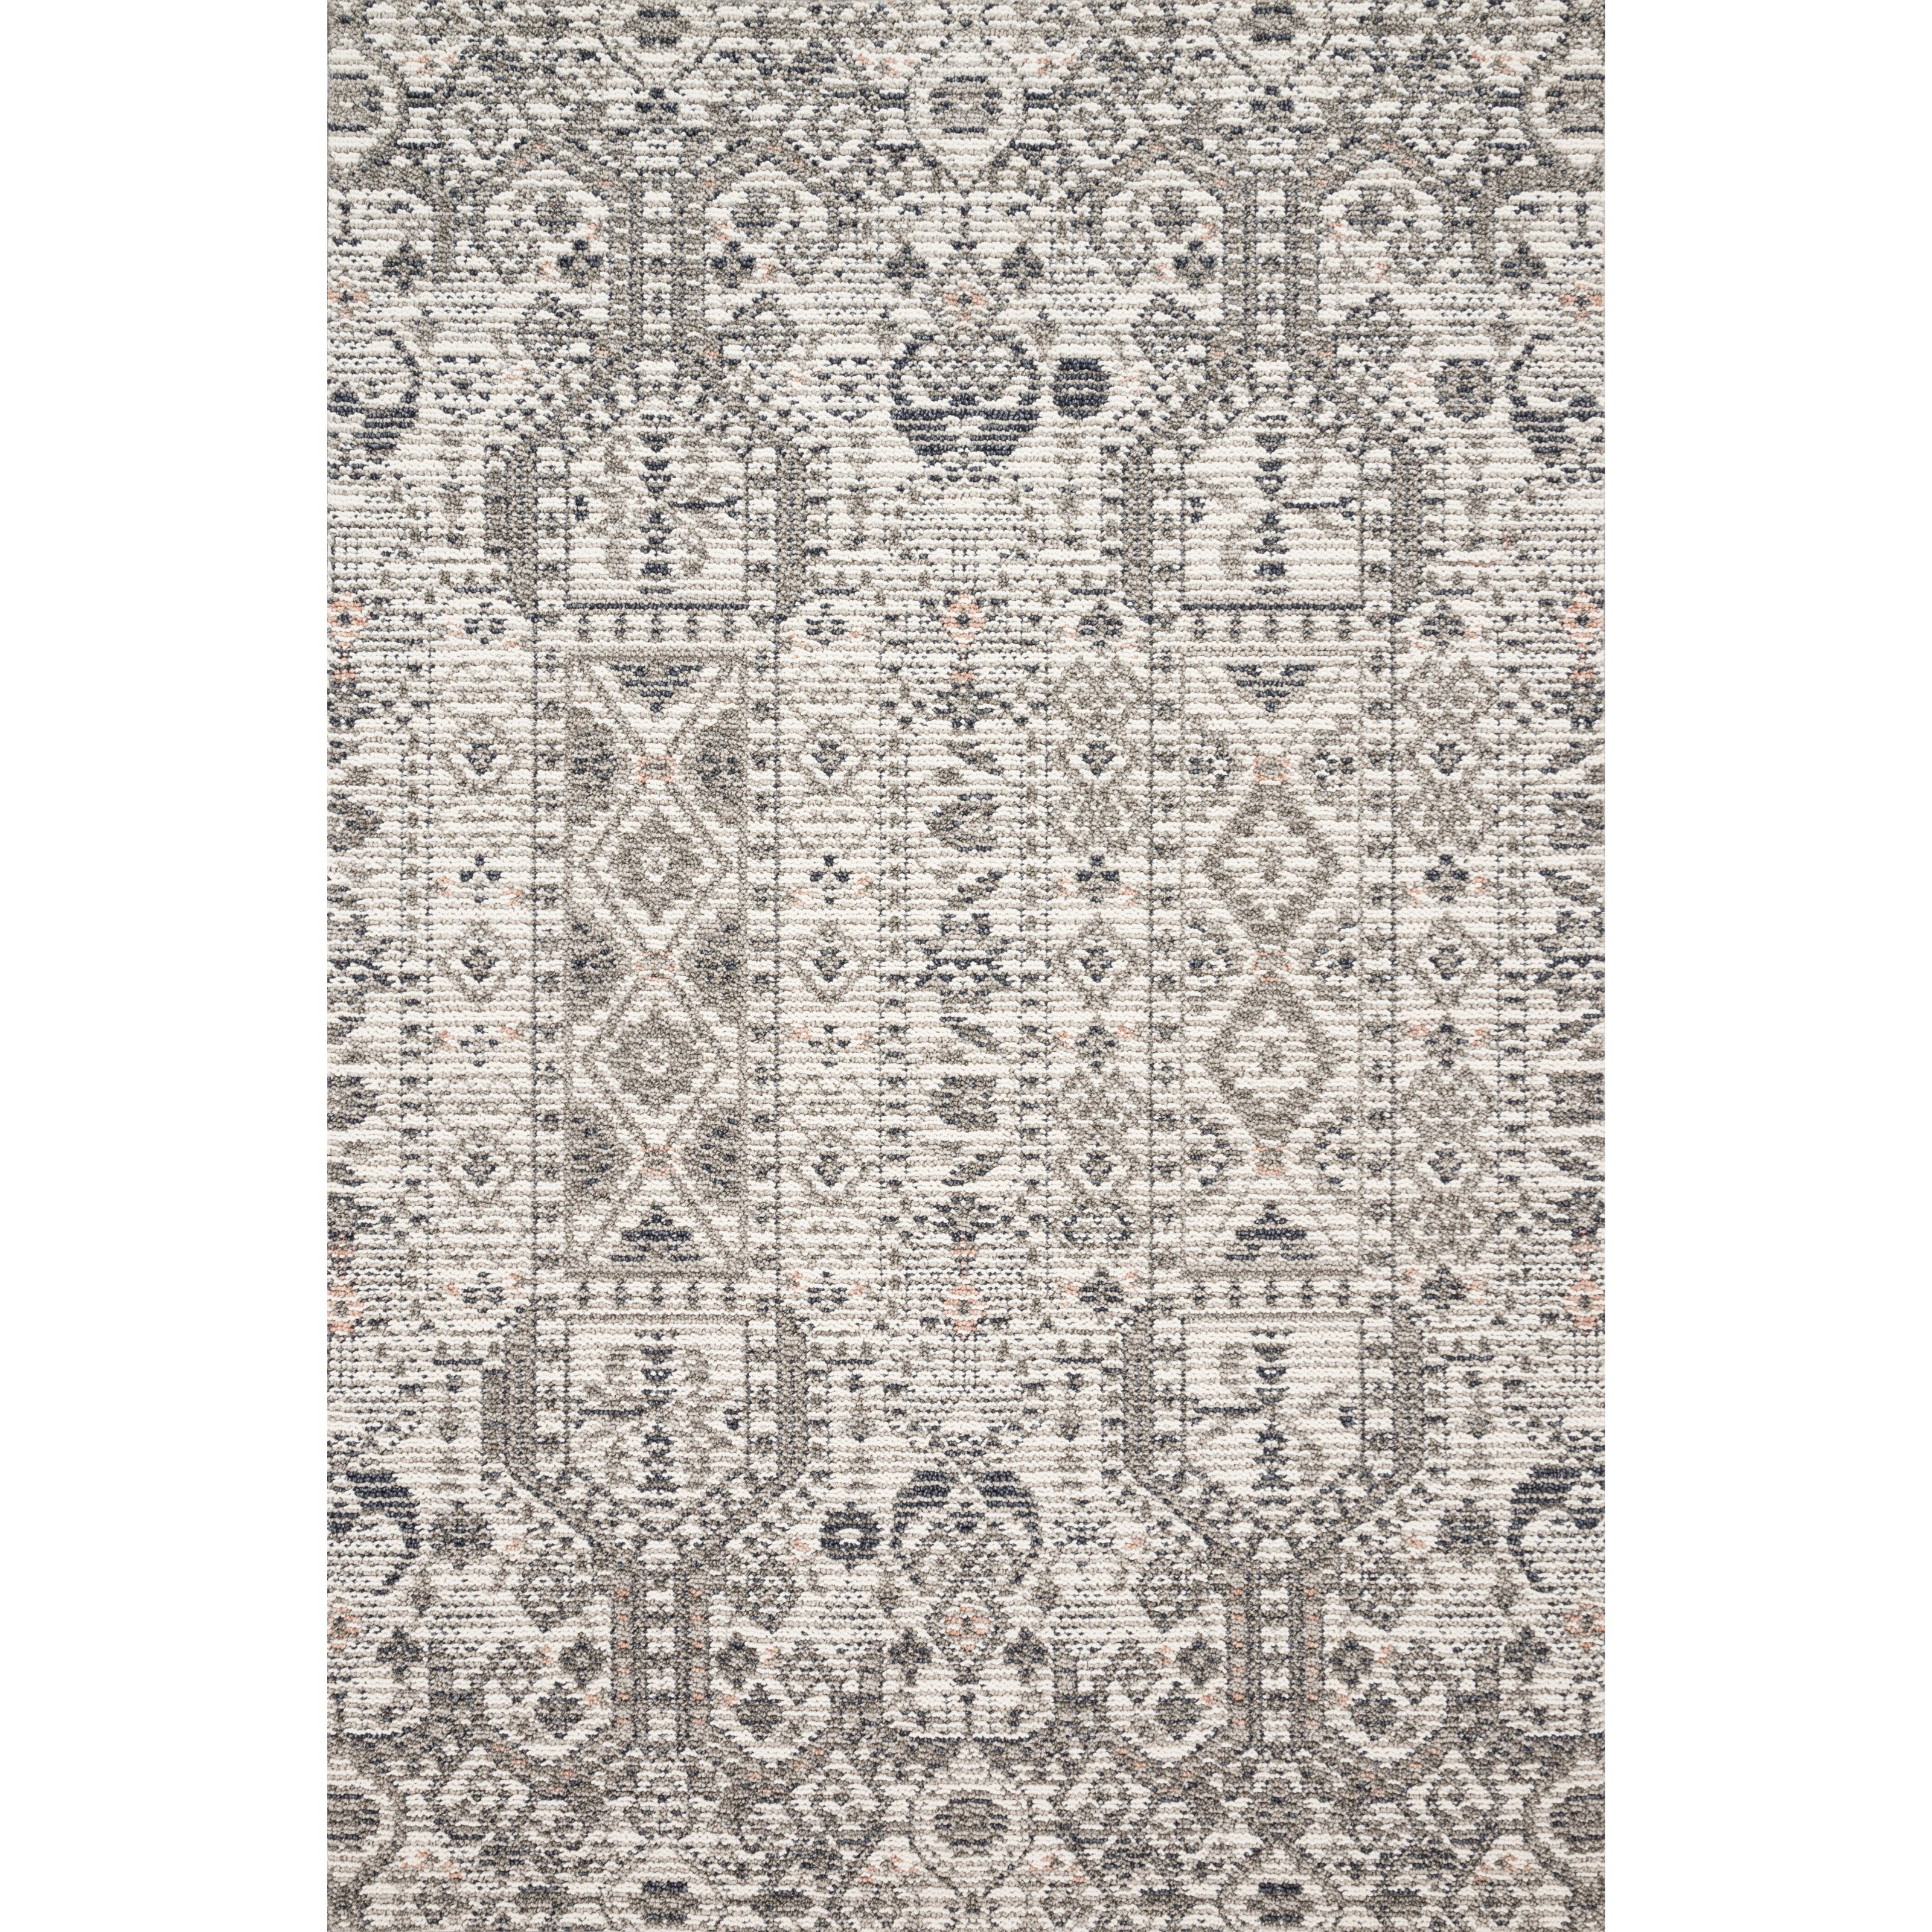 """Cole 1'6"""" x 1'6""""  Ivory / Multi Rug by Loloi Rugs at Virginia Furniture Market"""